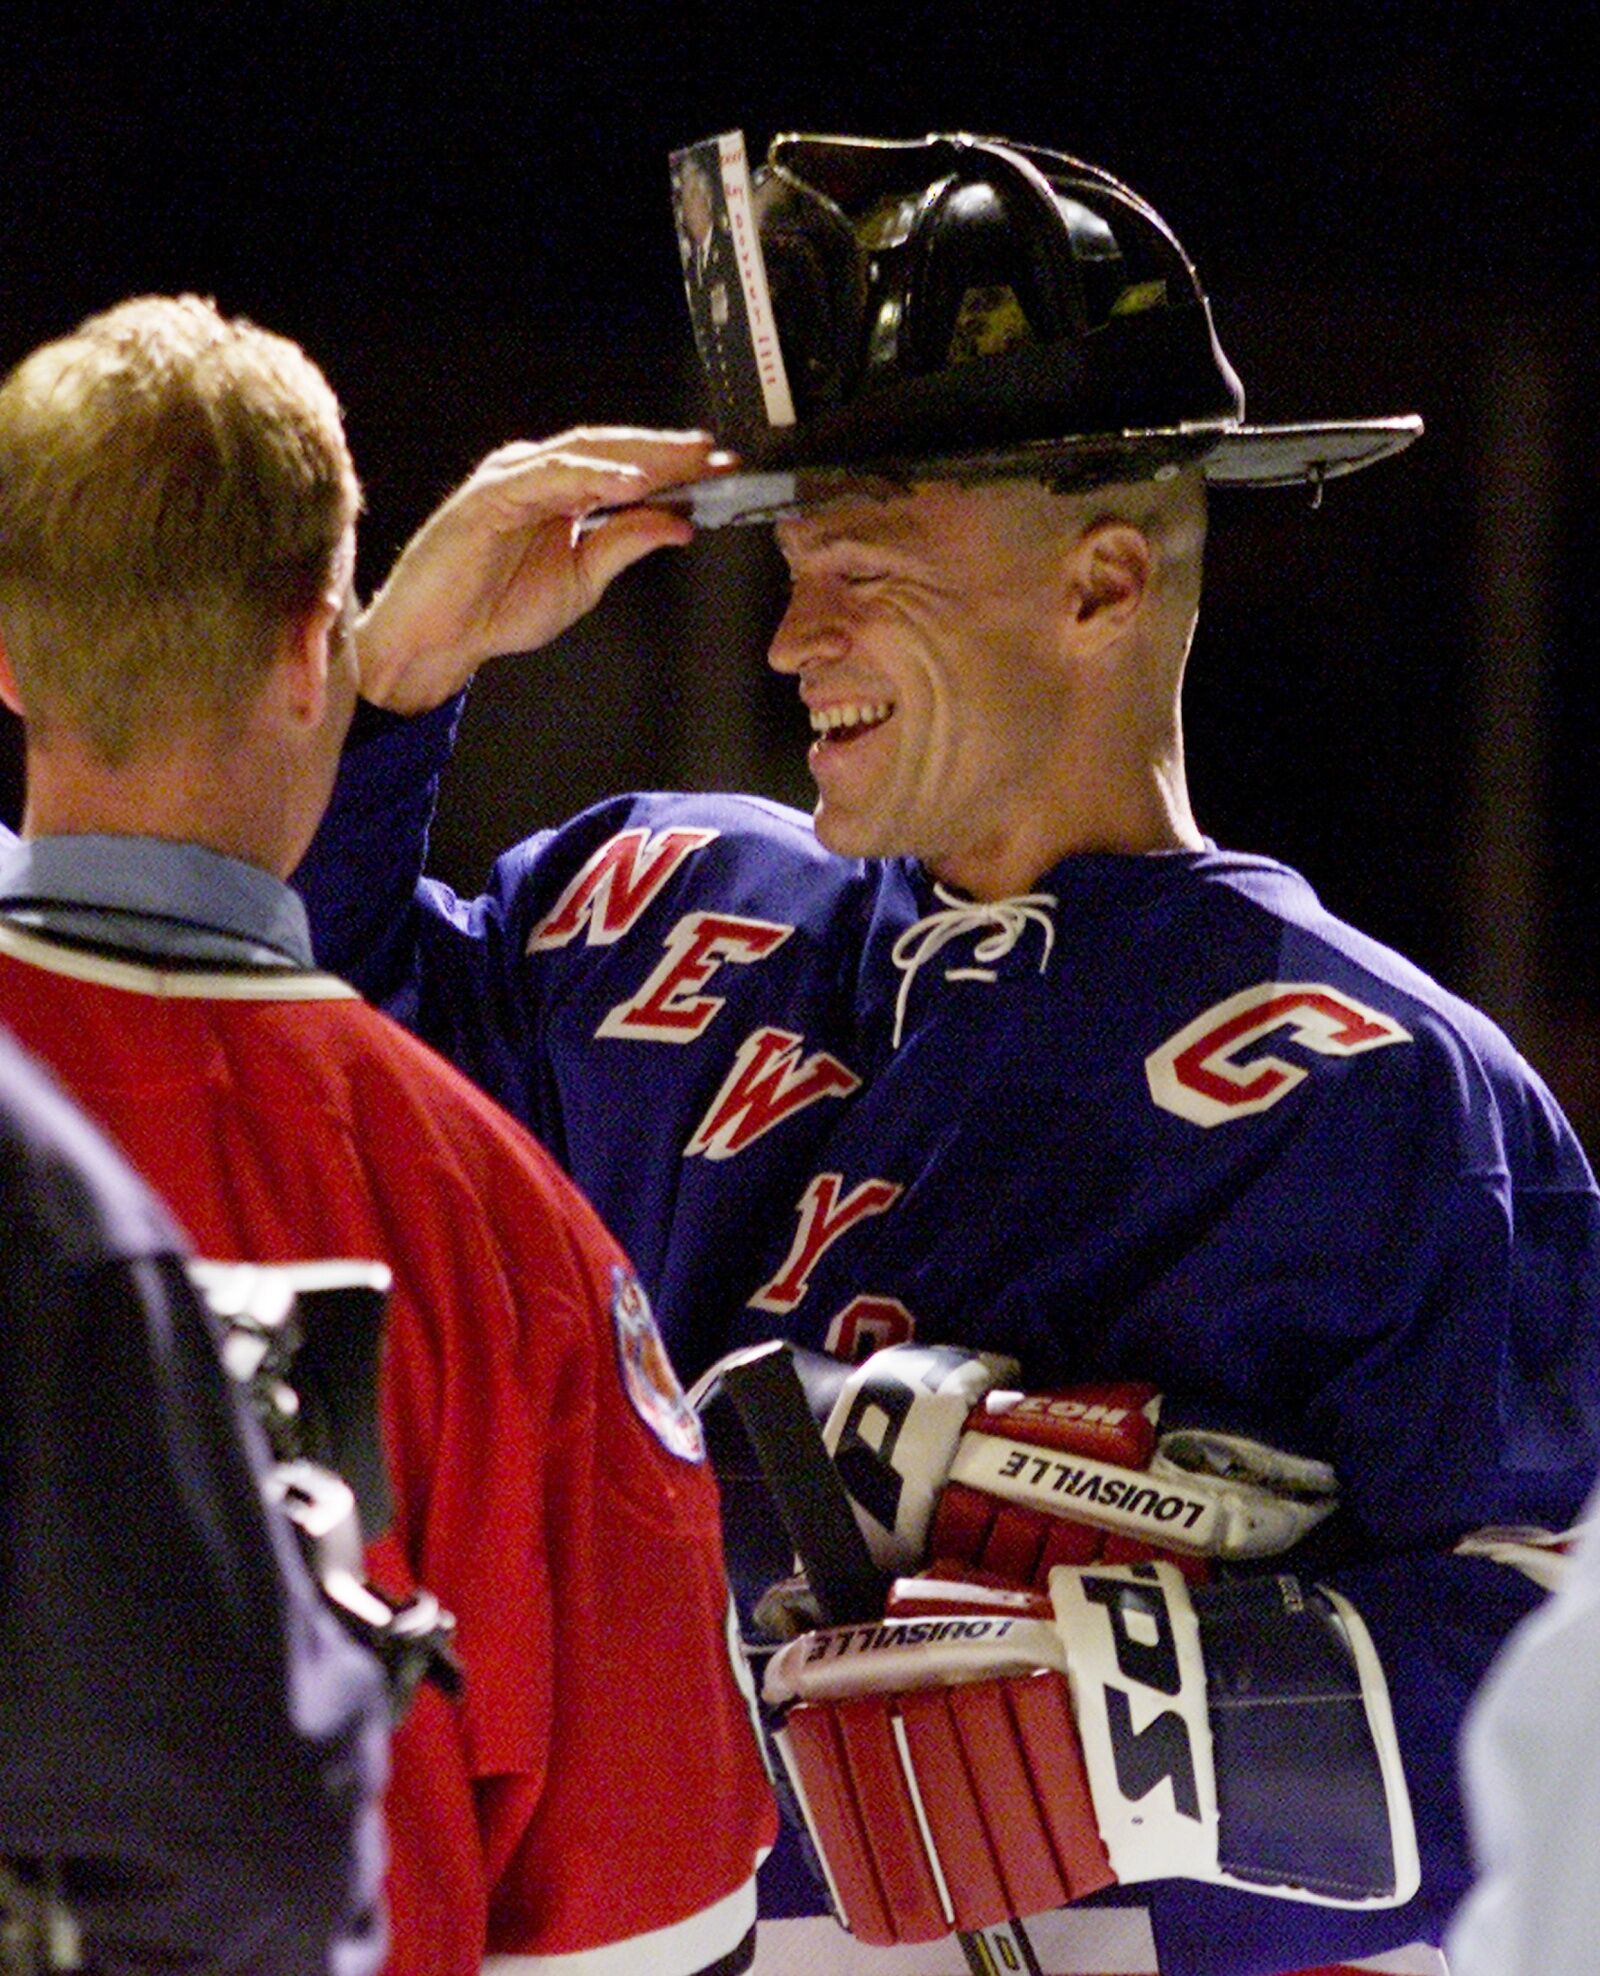 Remembering 9/11 and the New York Rangers